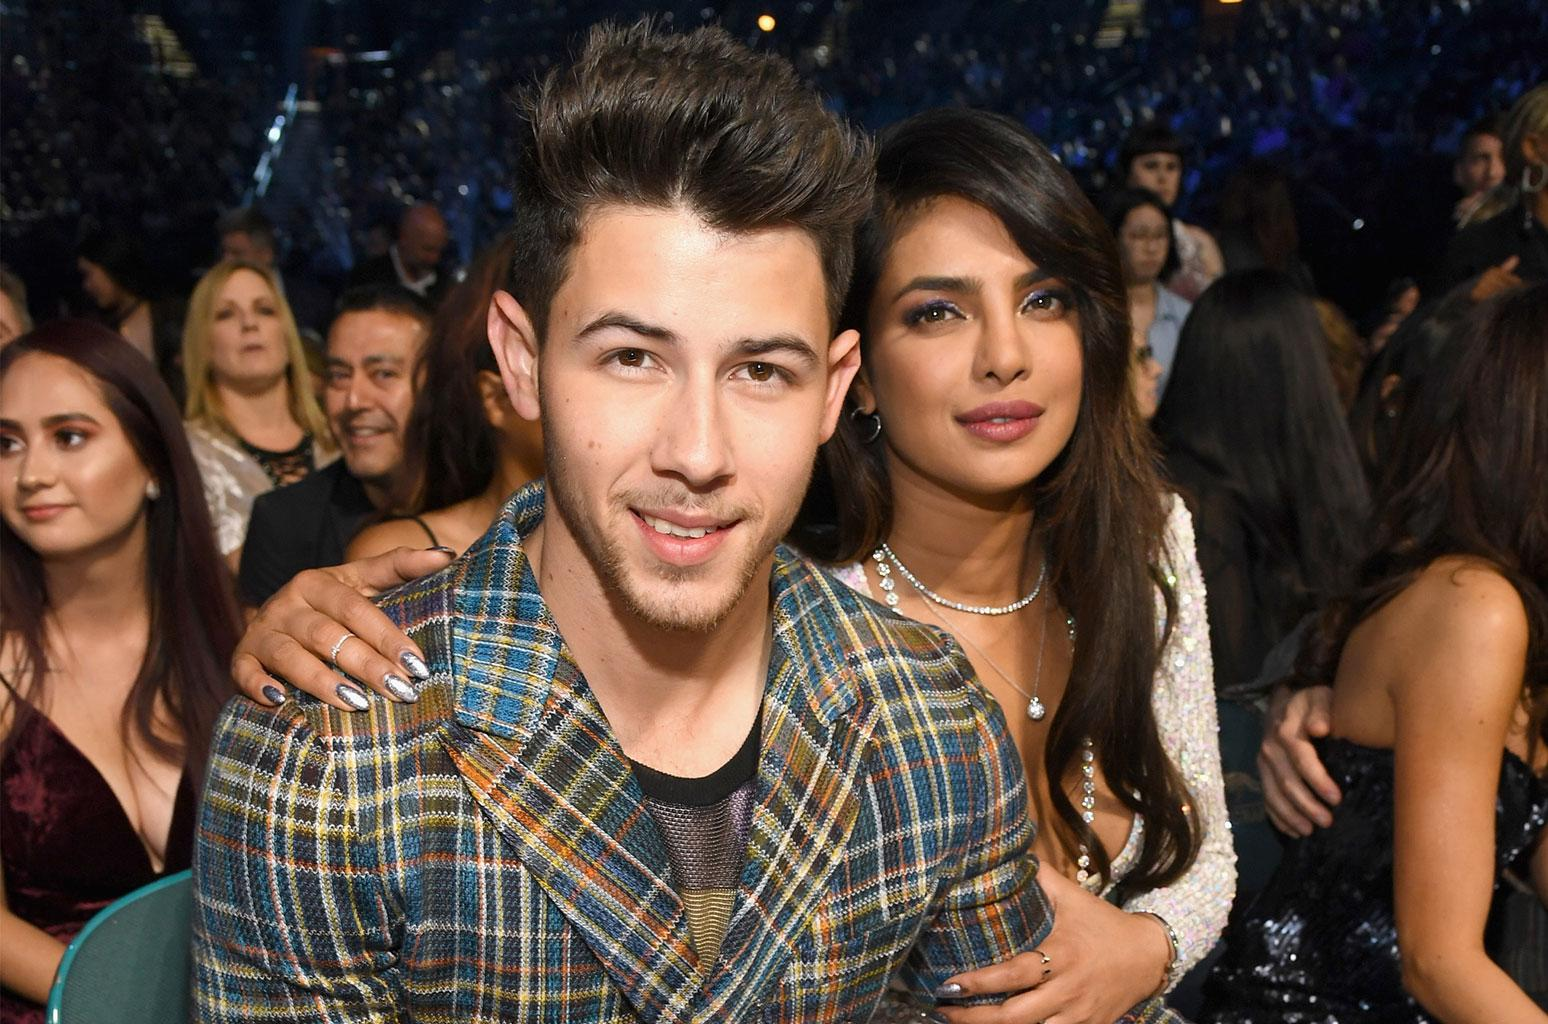 Nick Jonas Posts Sweet Message For Wife Priyanka Chopra, Celebrating One Year Since They Began Seeing Each Other!